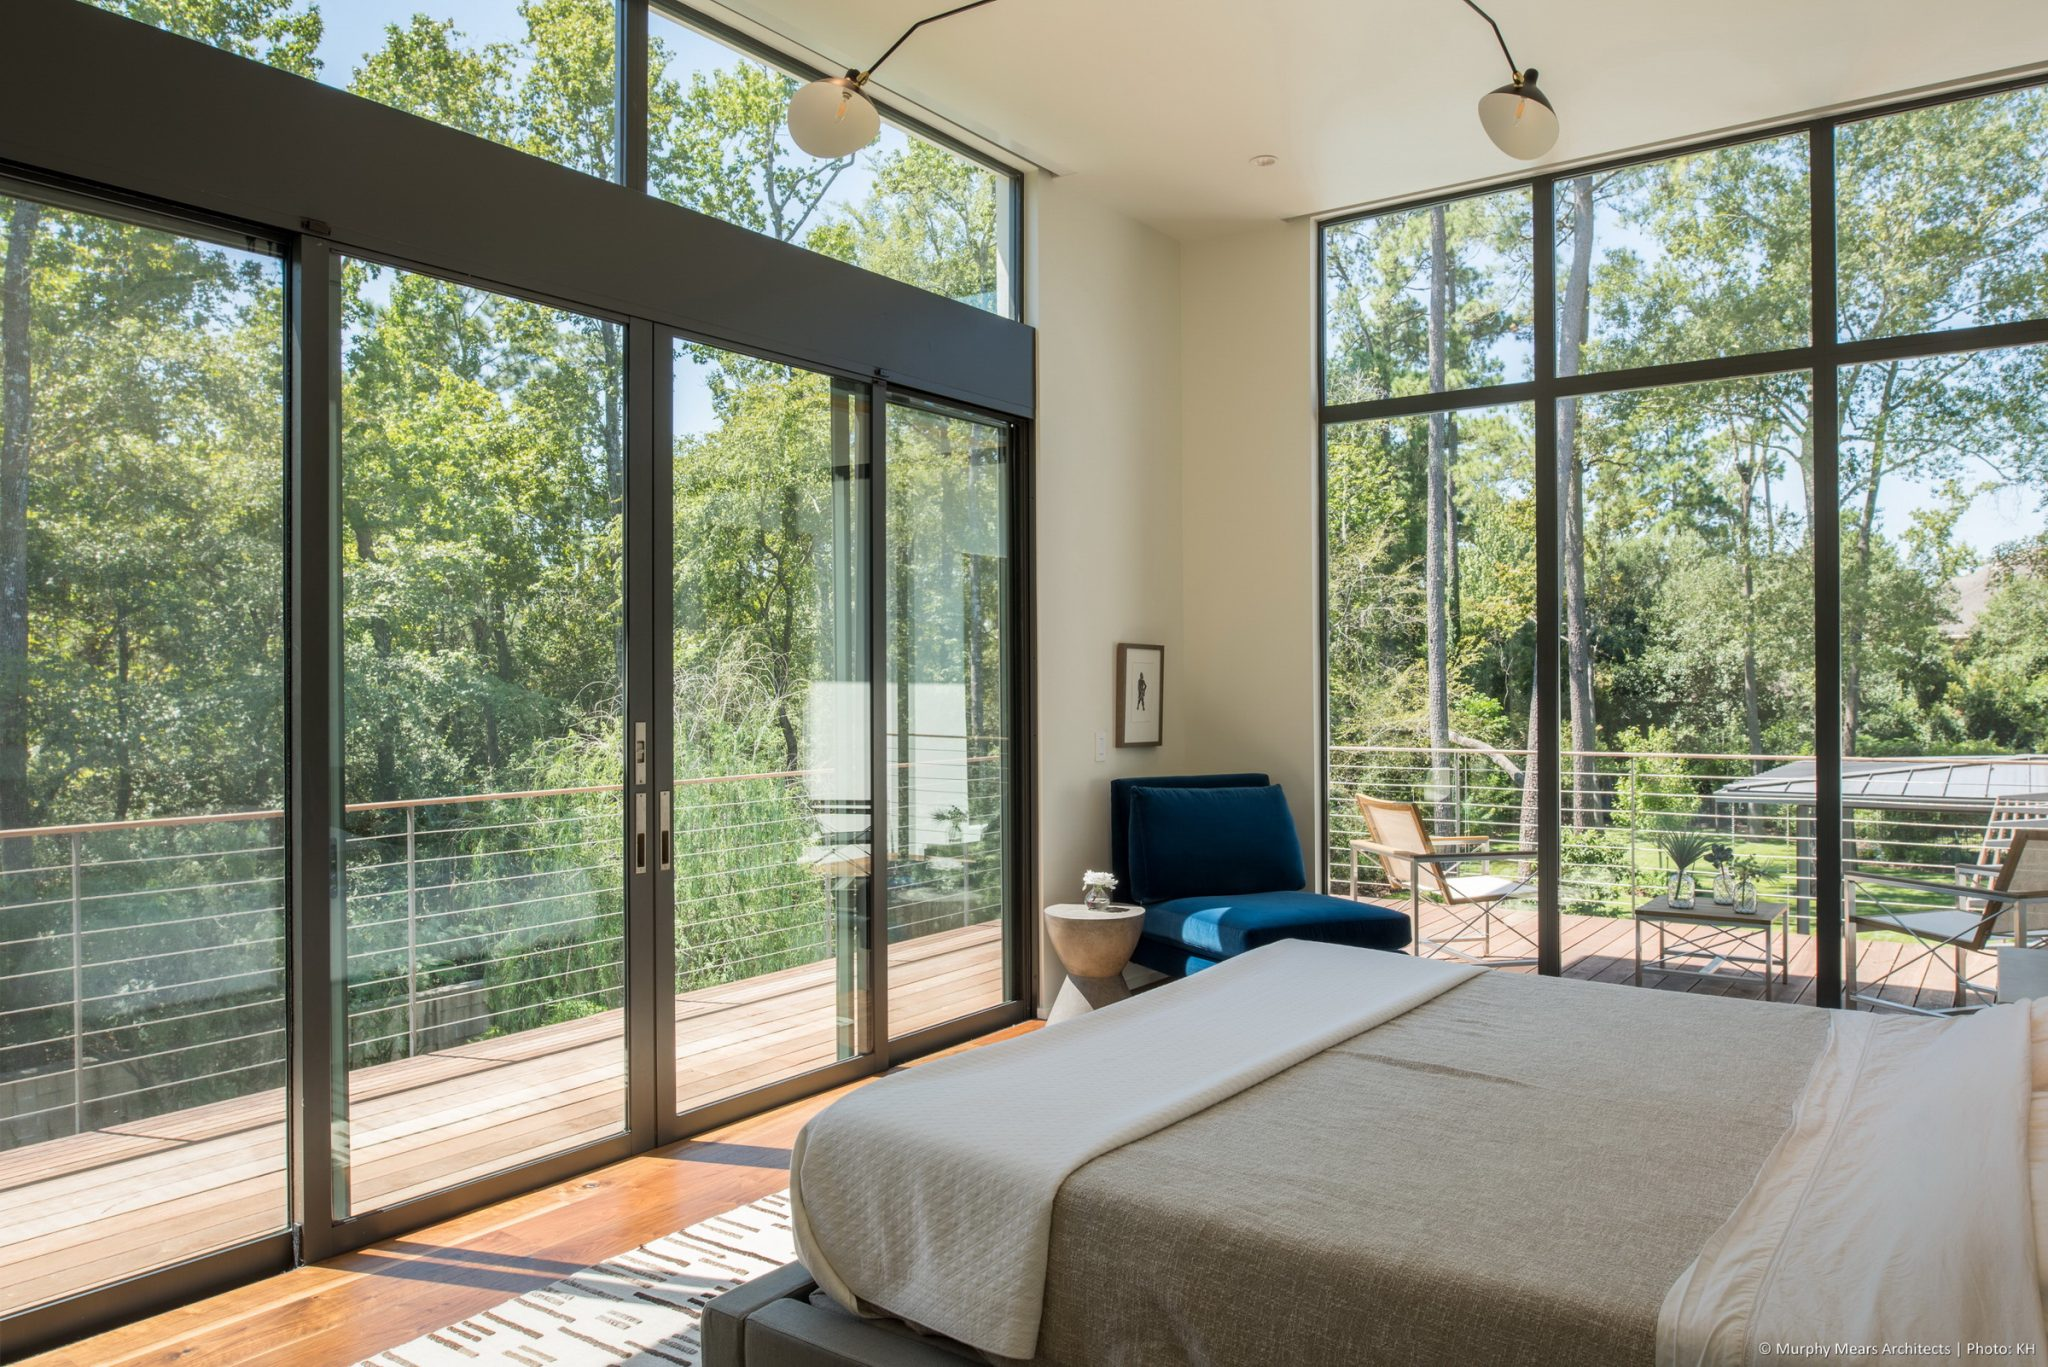 Carlton Woods Residence - Sliding glass doors open up to the wood and steel master balcony which overlooks the dense green backyard landscape.